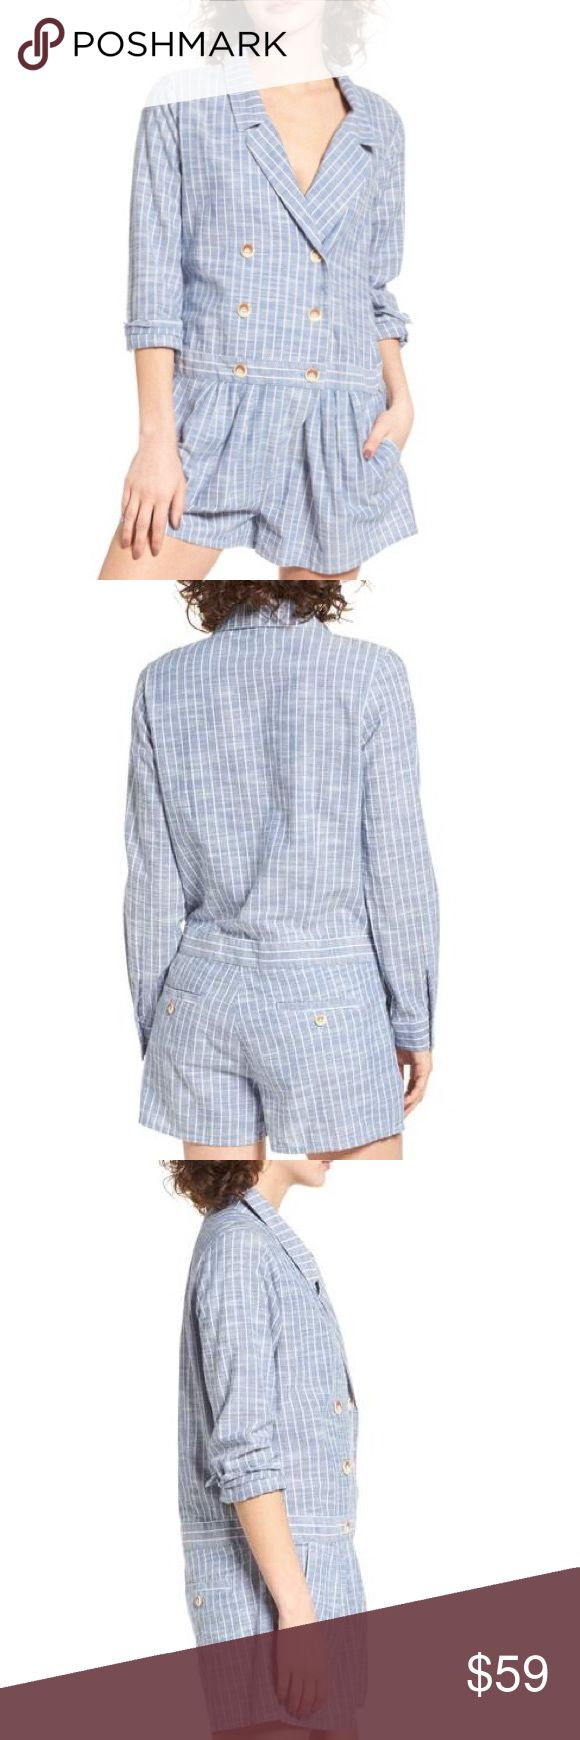 ✨ Obey linen pinstripe fair trade romper M L Brand new with tags, authentic Obey by Shepard Fairey linen-style pinstripe Sanders romper, junior sizes M & L available. Really cute and easy to throw on and have a polished look. Blue woven material with long sleeves that button at cuff (wear down or rolled up), double breasted button effect with a v-neckline. 100% fair trade. Check out my other listings to bundle and save! Make me an offer... Obey Dresses Long Sleeve